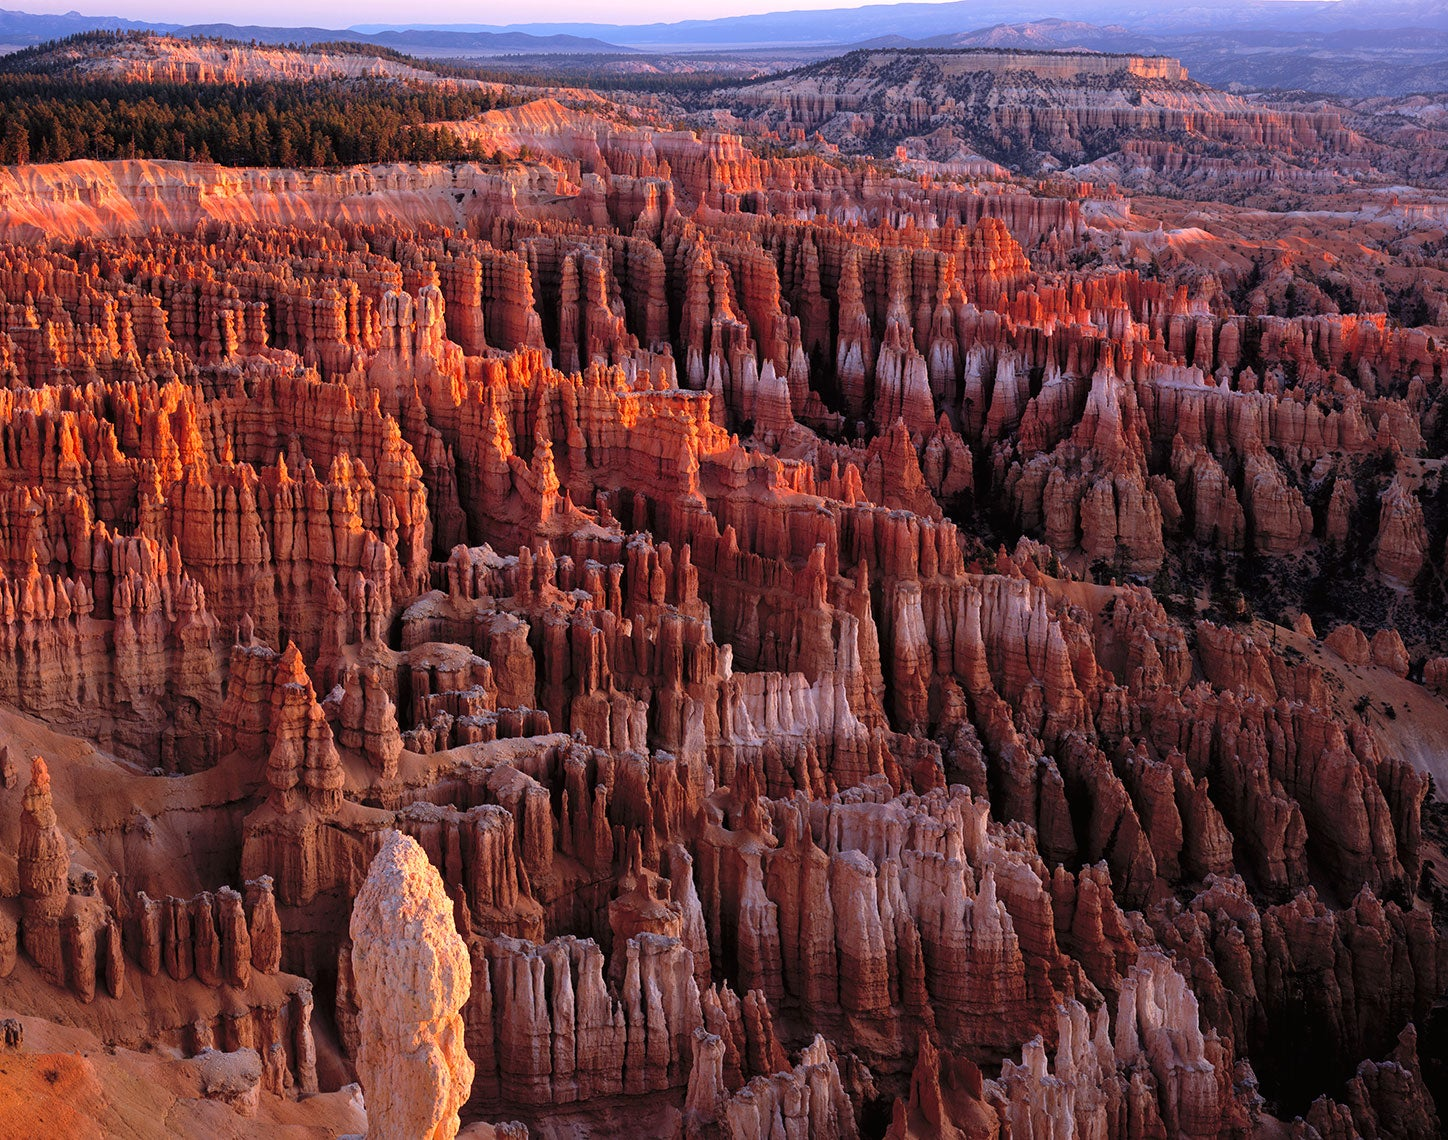 Image of Bryce Amphitheatre, Bryce Canyon National Park, Utah